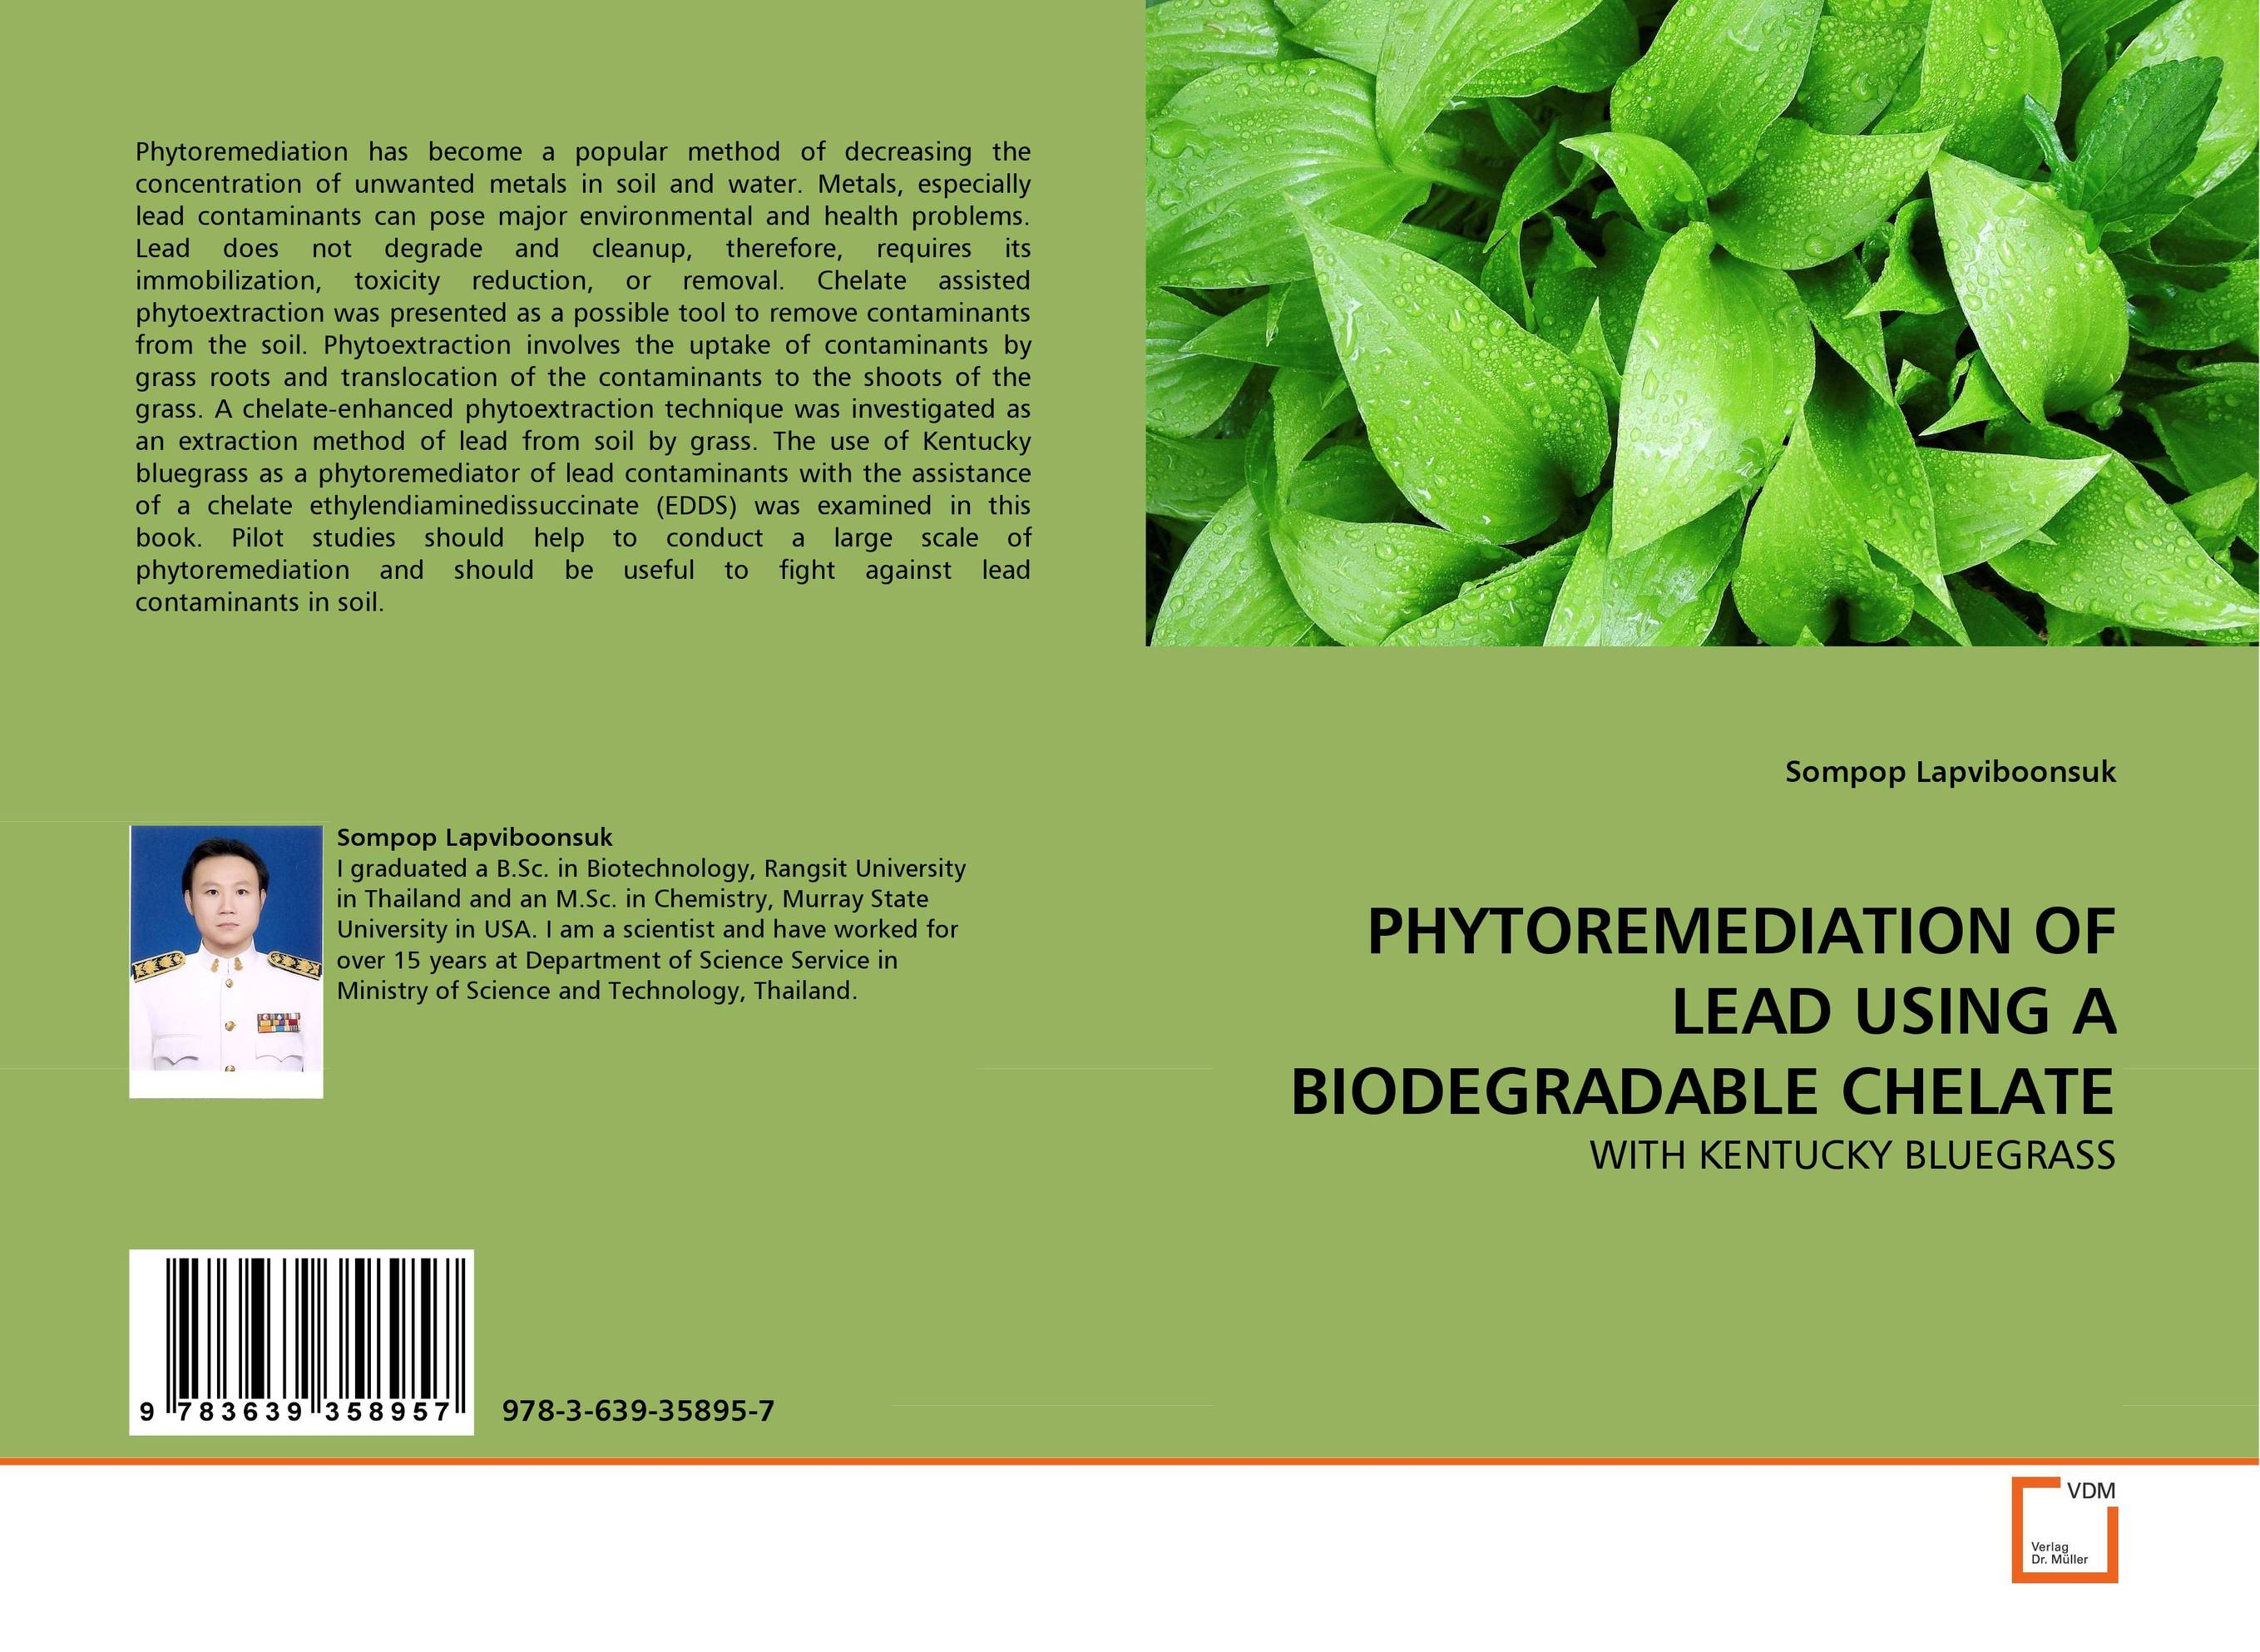 PHYTOREMEDIATION OF LEAD USING A BIODEGRADABLE CHELATE developments in surface contamination and cleaning methods for removal of particle contaminants